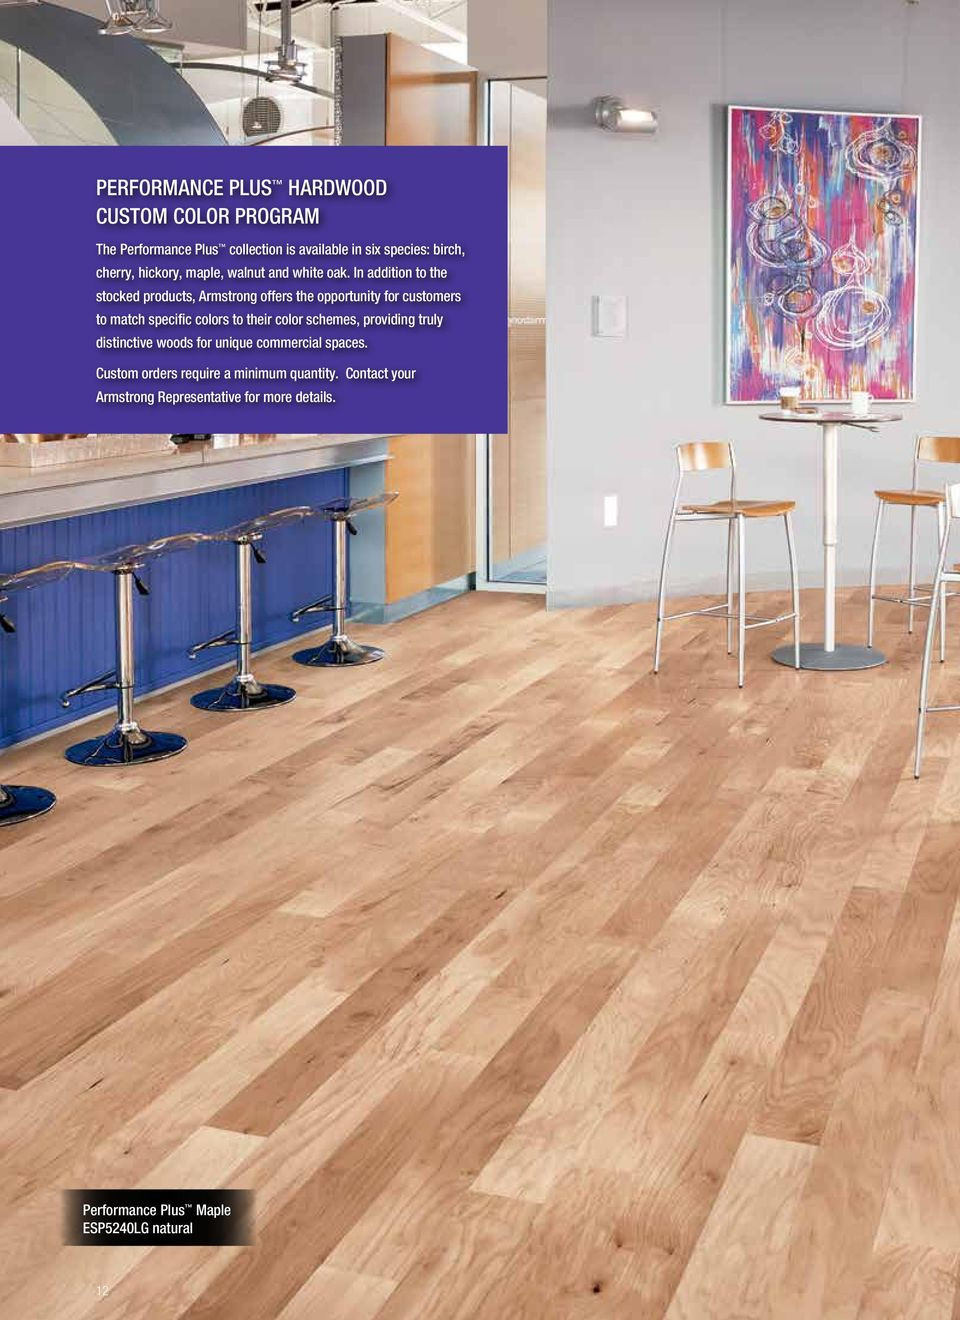 homerwood hardwood flooring reviews of performance plus midtown pdf regarding in addition to the stocked products armstrong offers the opportunity for customers to match specific